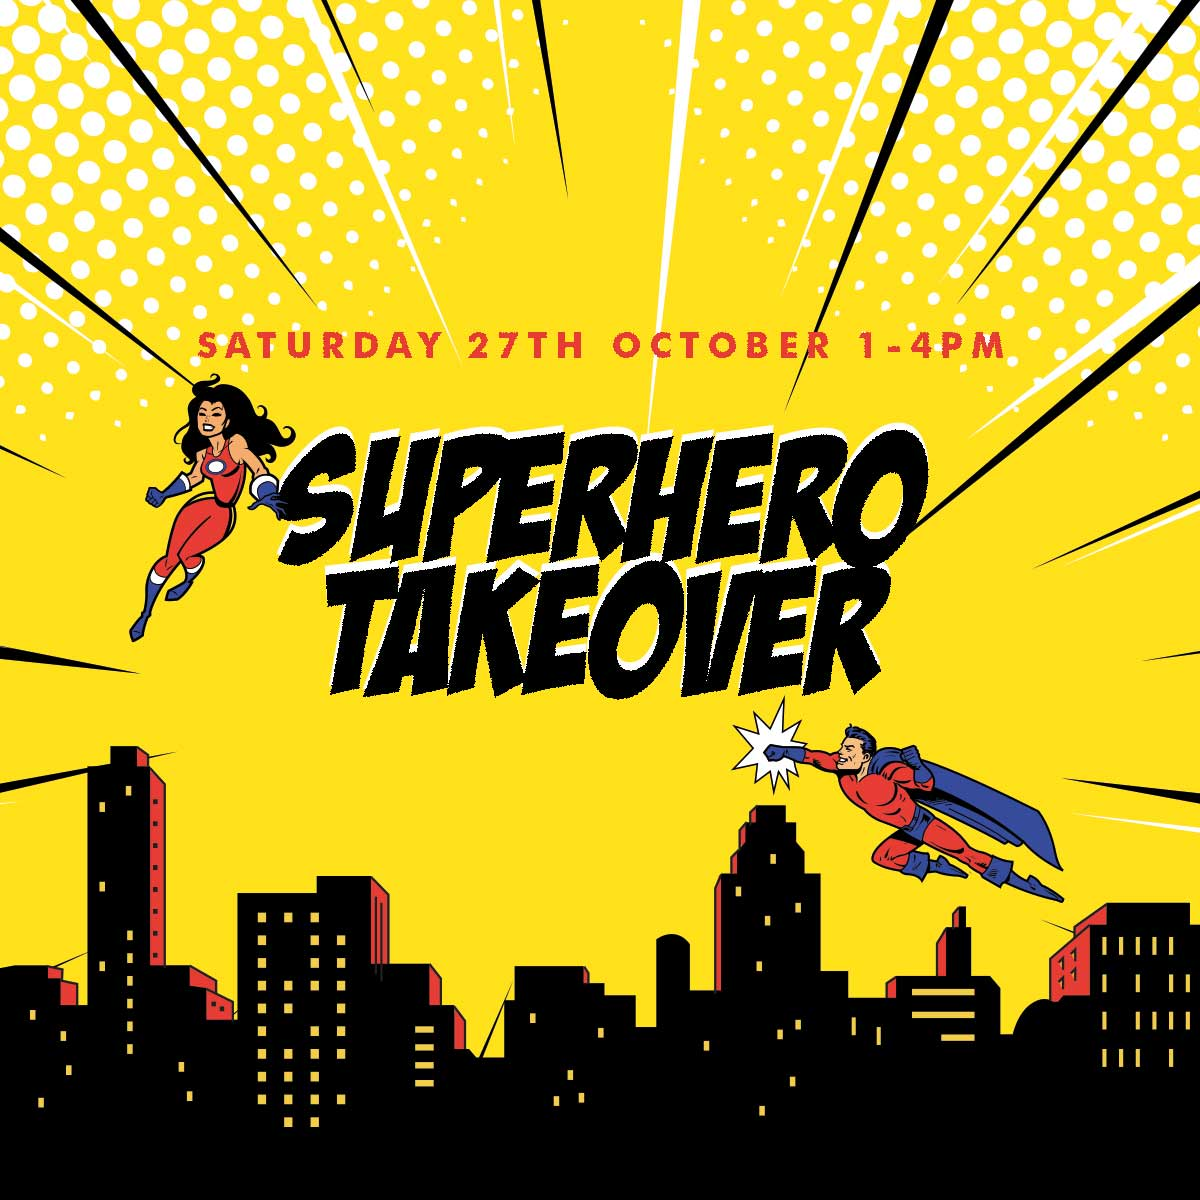 Superhero Takeover at Bridgewater Shopping Centre!